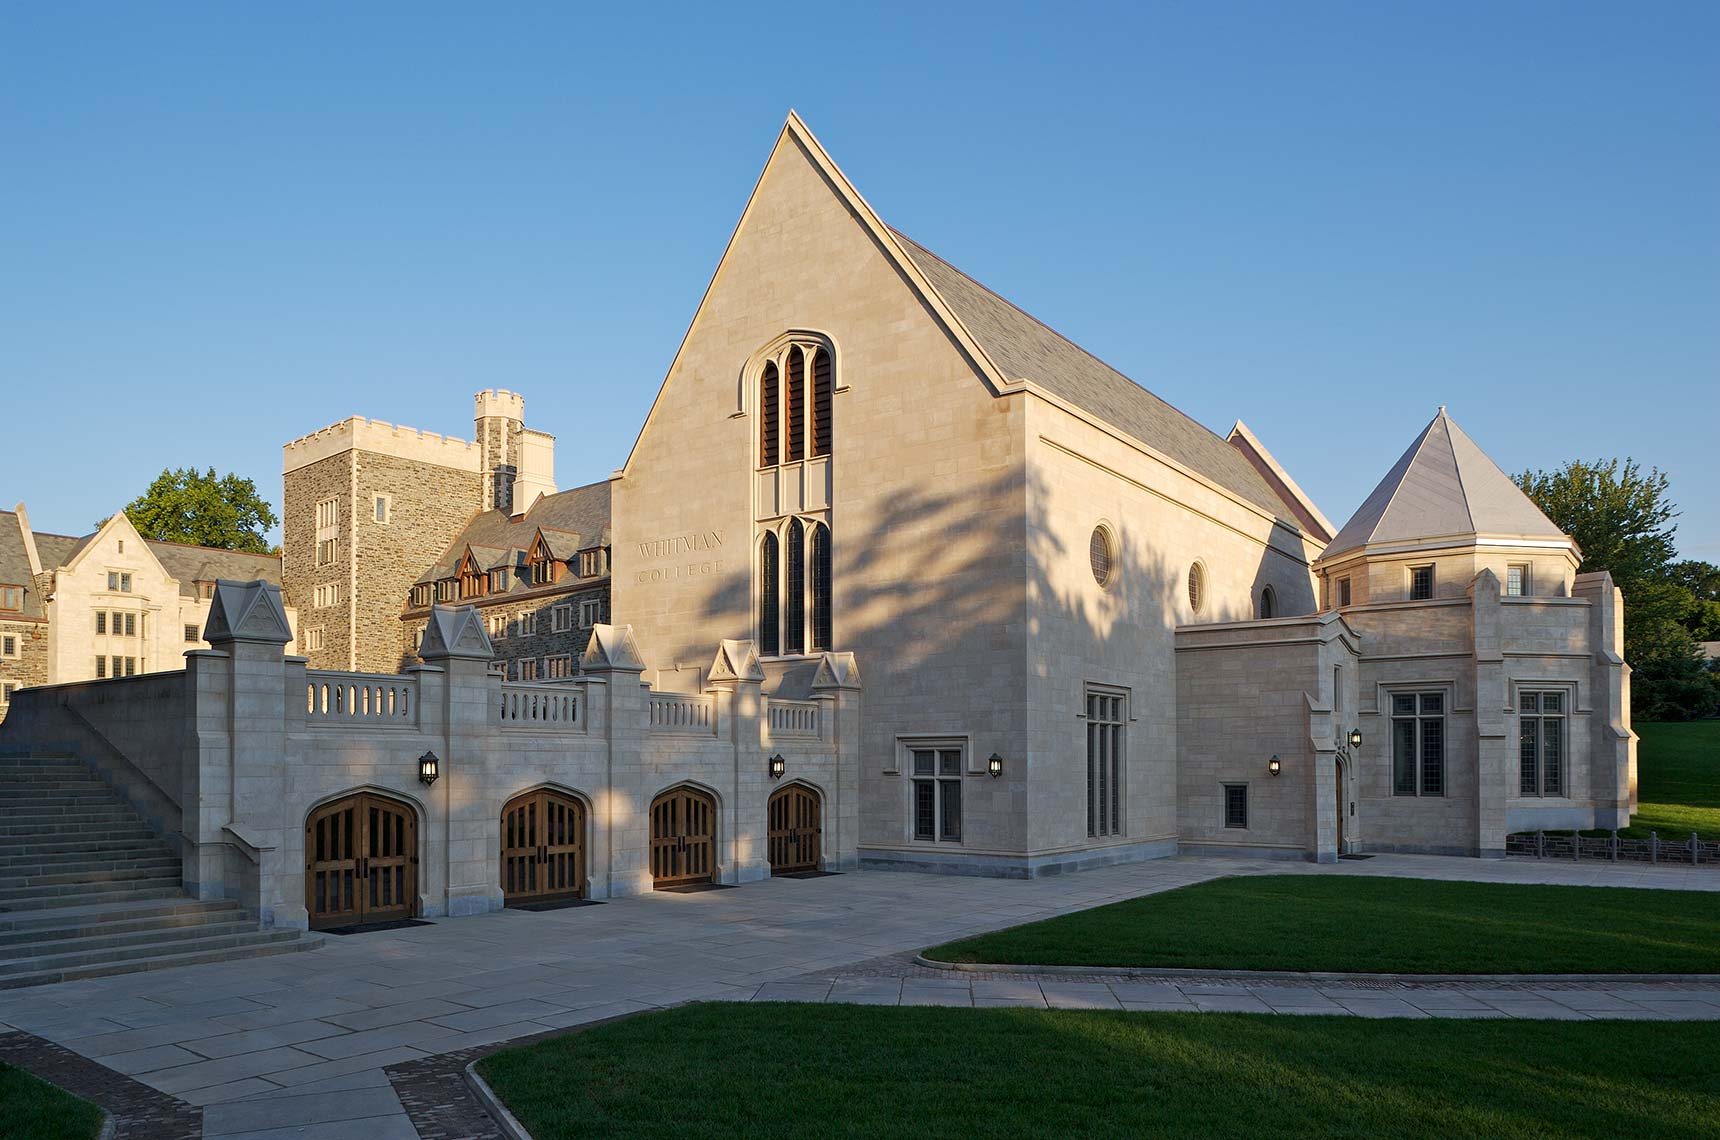 Whitman College, Princeton University - Dining Hall & Theater Entrance